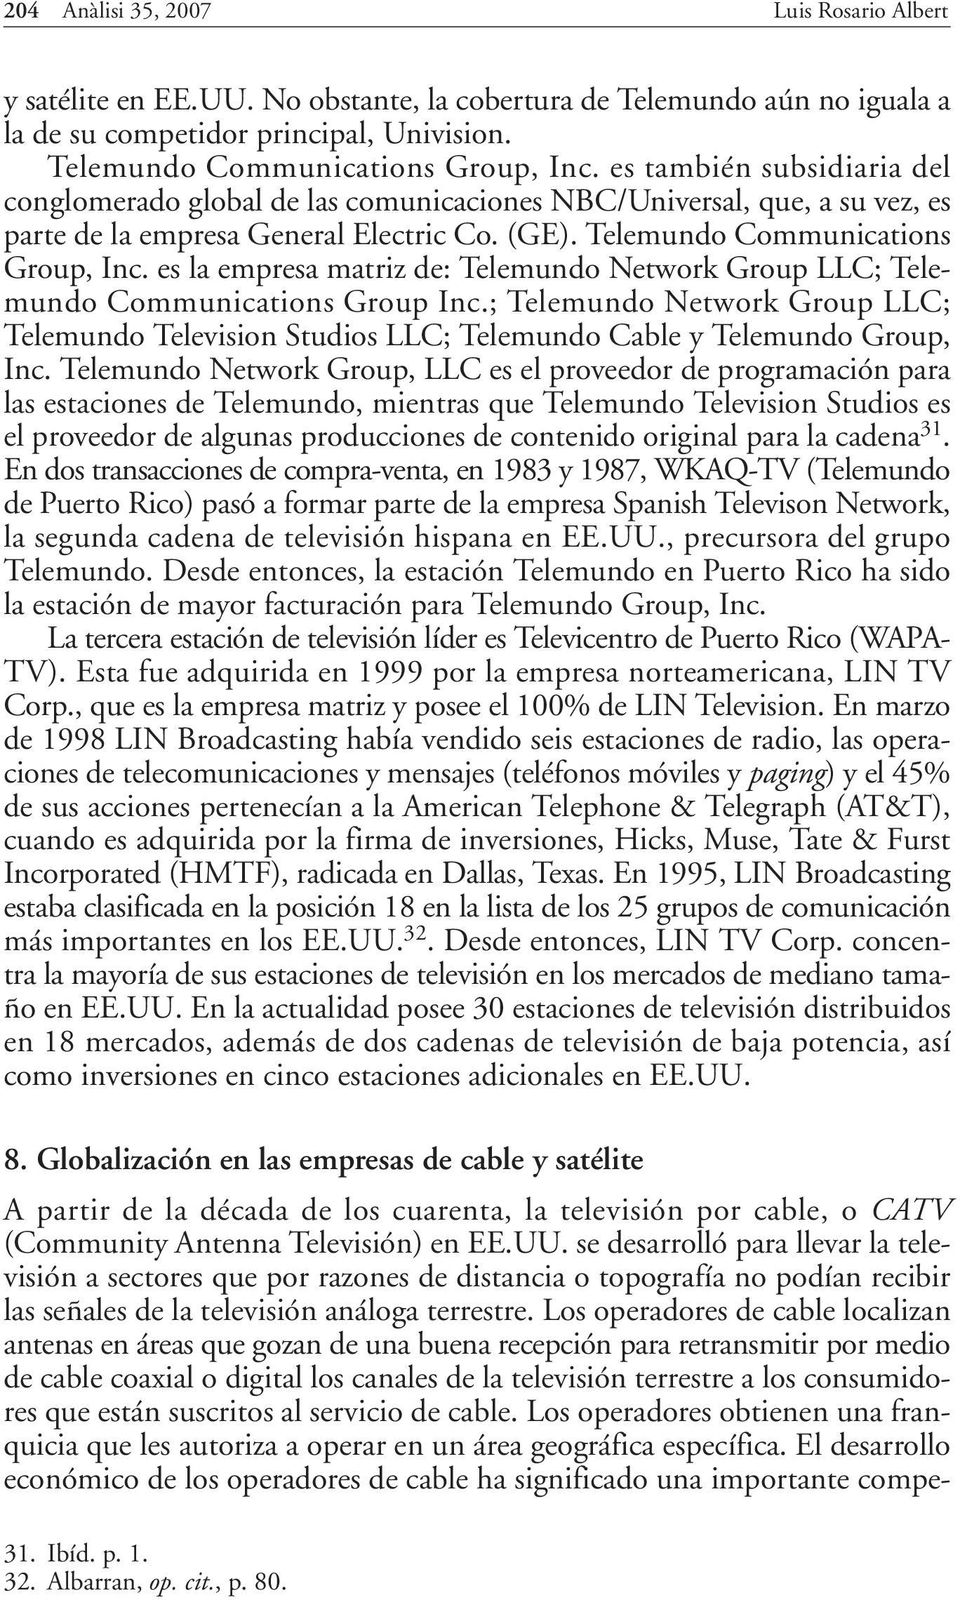 es la empresa matriz de: Telemundo Network Group LLC; Telemundo Communications Group Inc.; Telemundo Network Group LLC; Telemundo Television Studios LLC; Telemundo Cable y Telemundo Group, Inc.